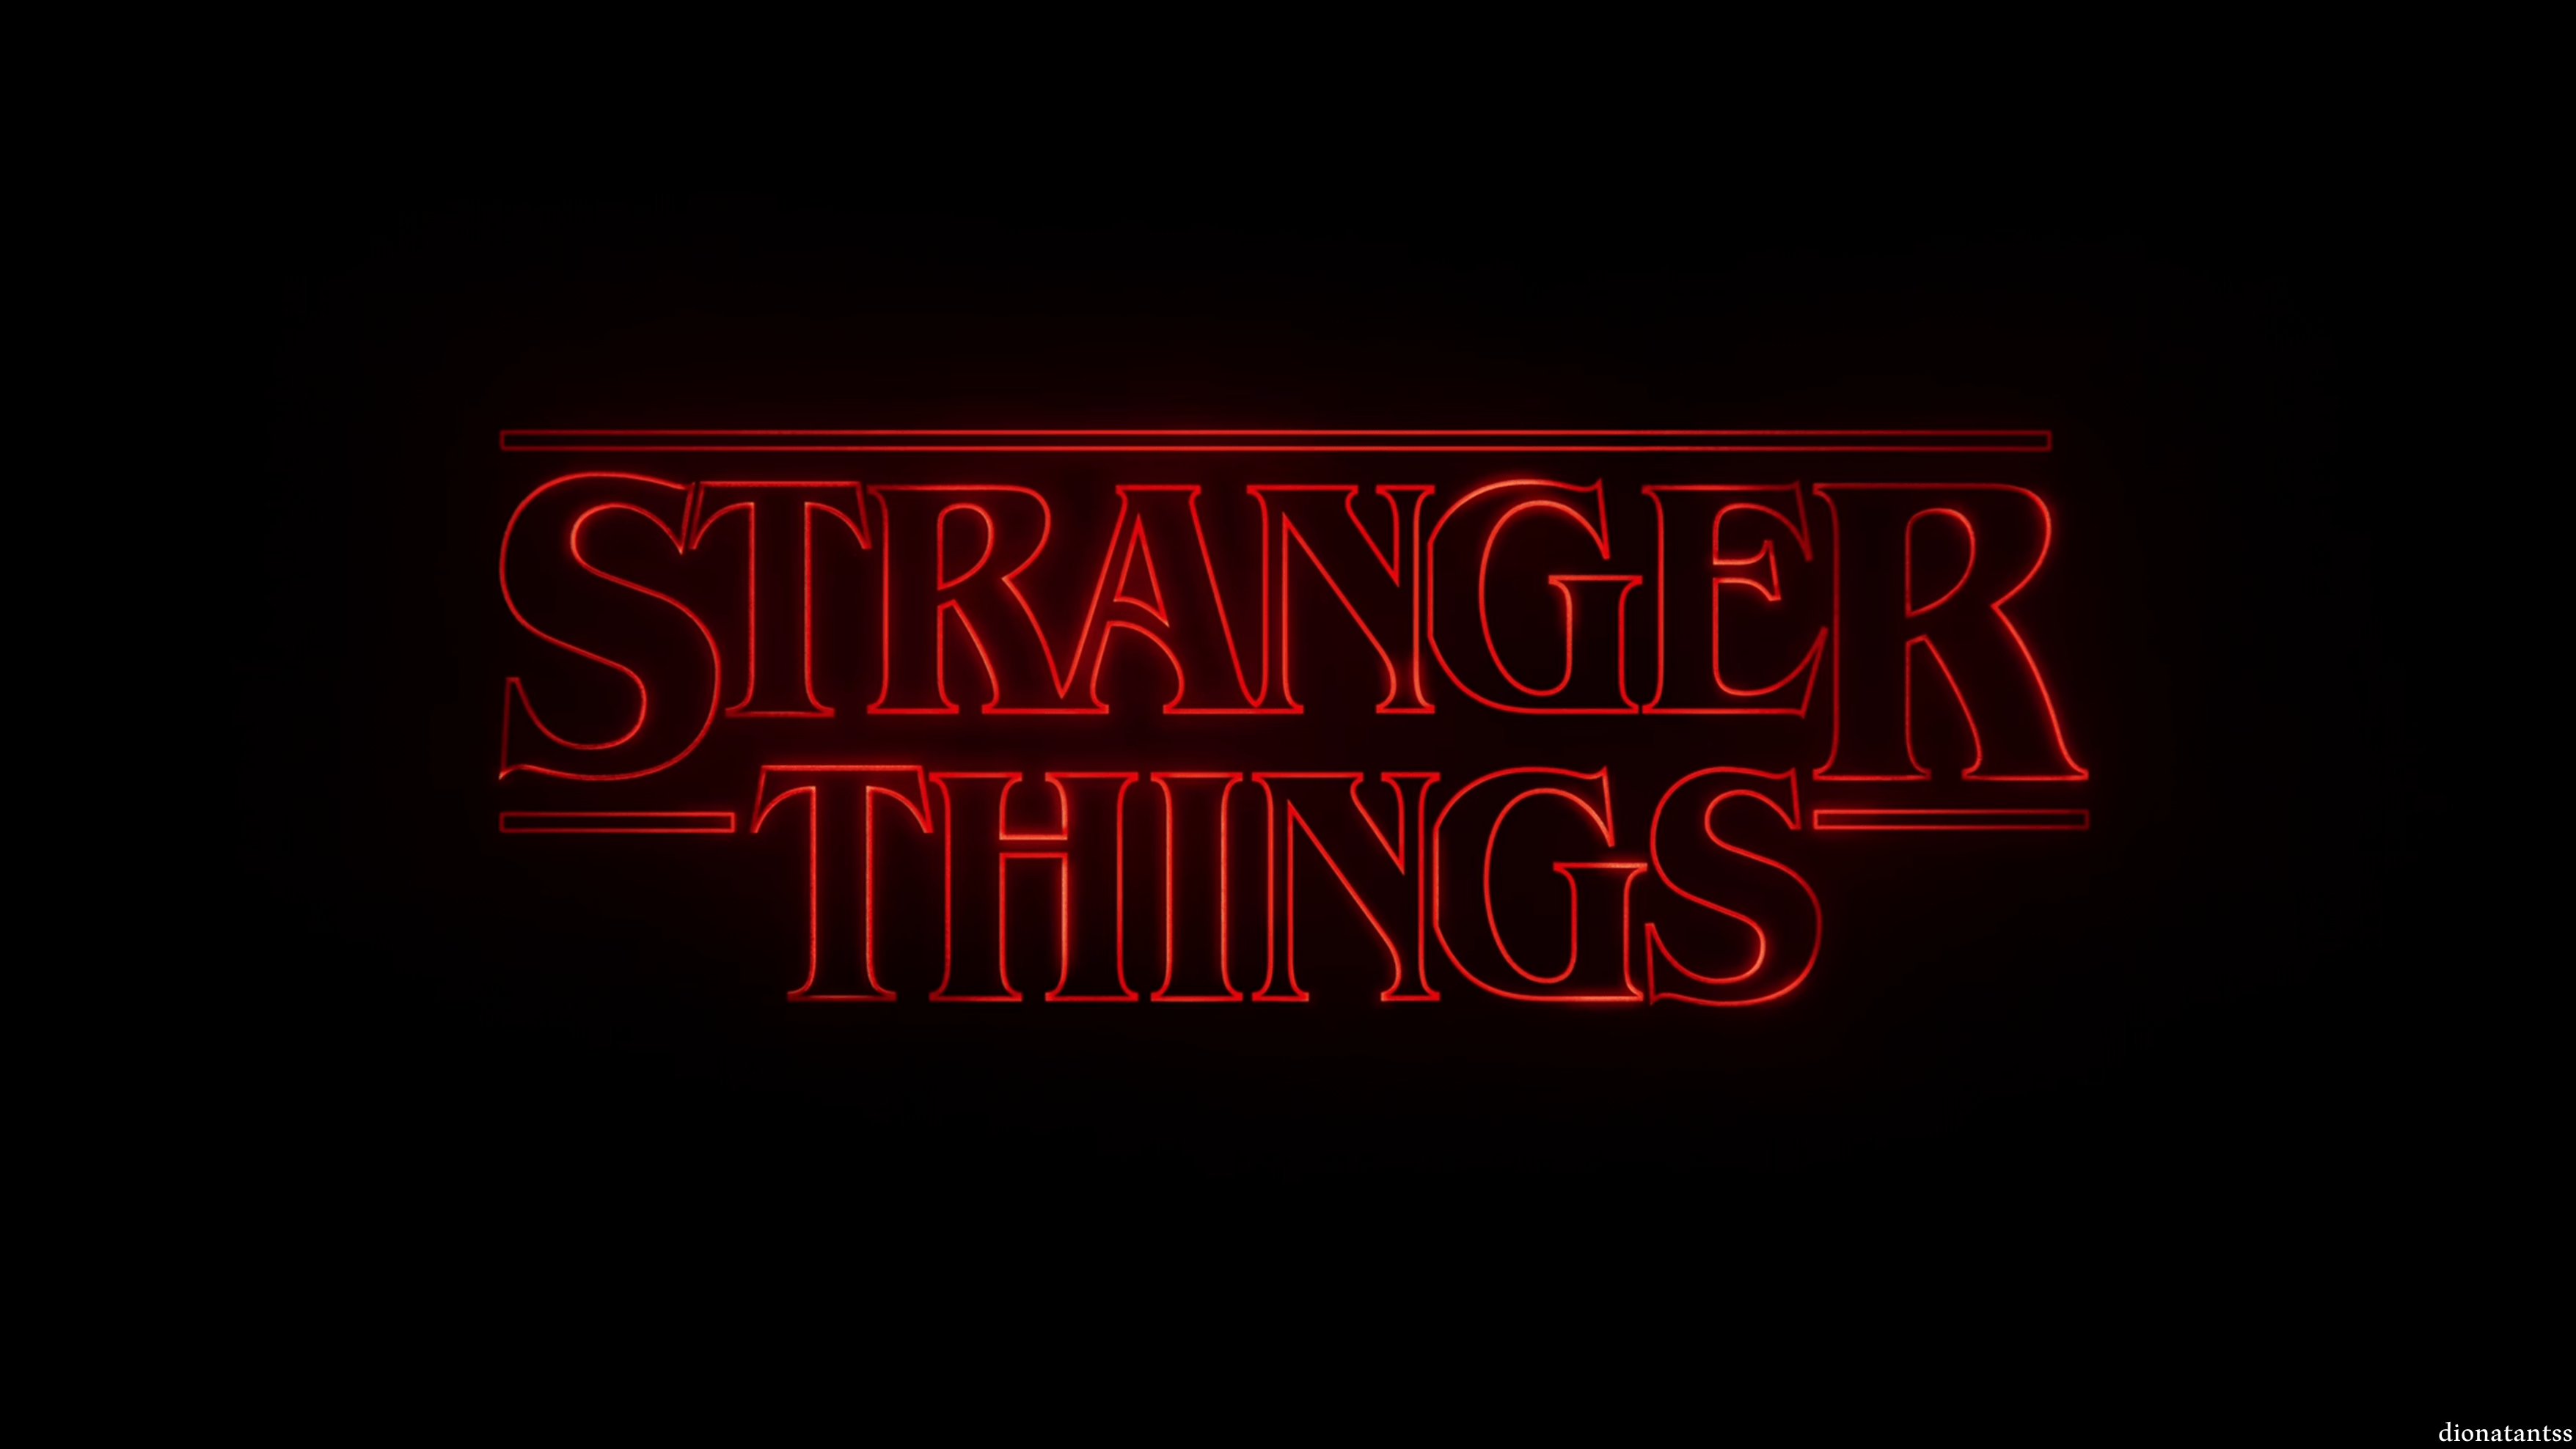 92 Stranger Things Wallpapers On Wallpapersafari